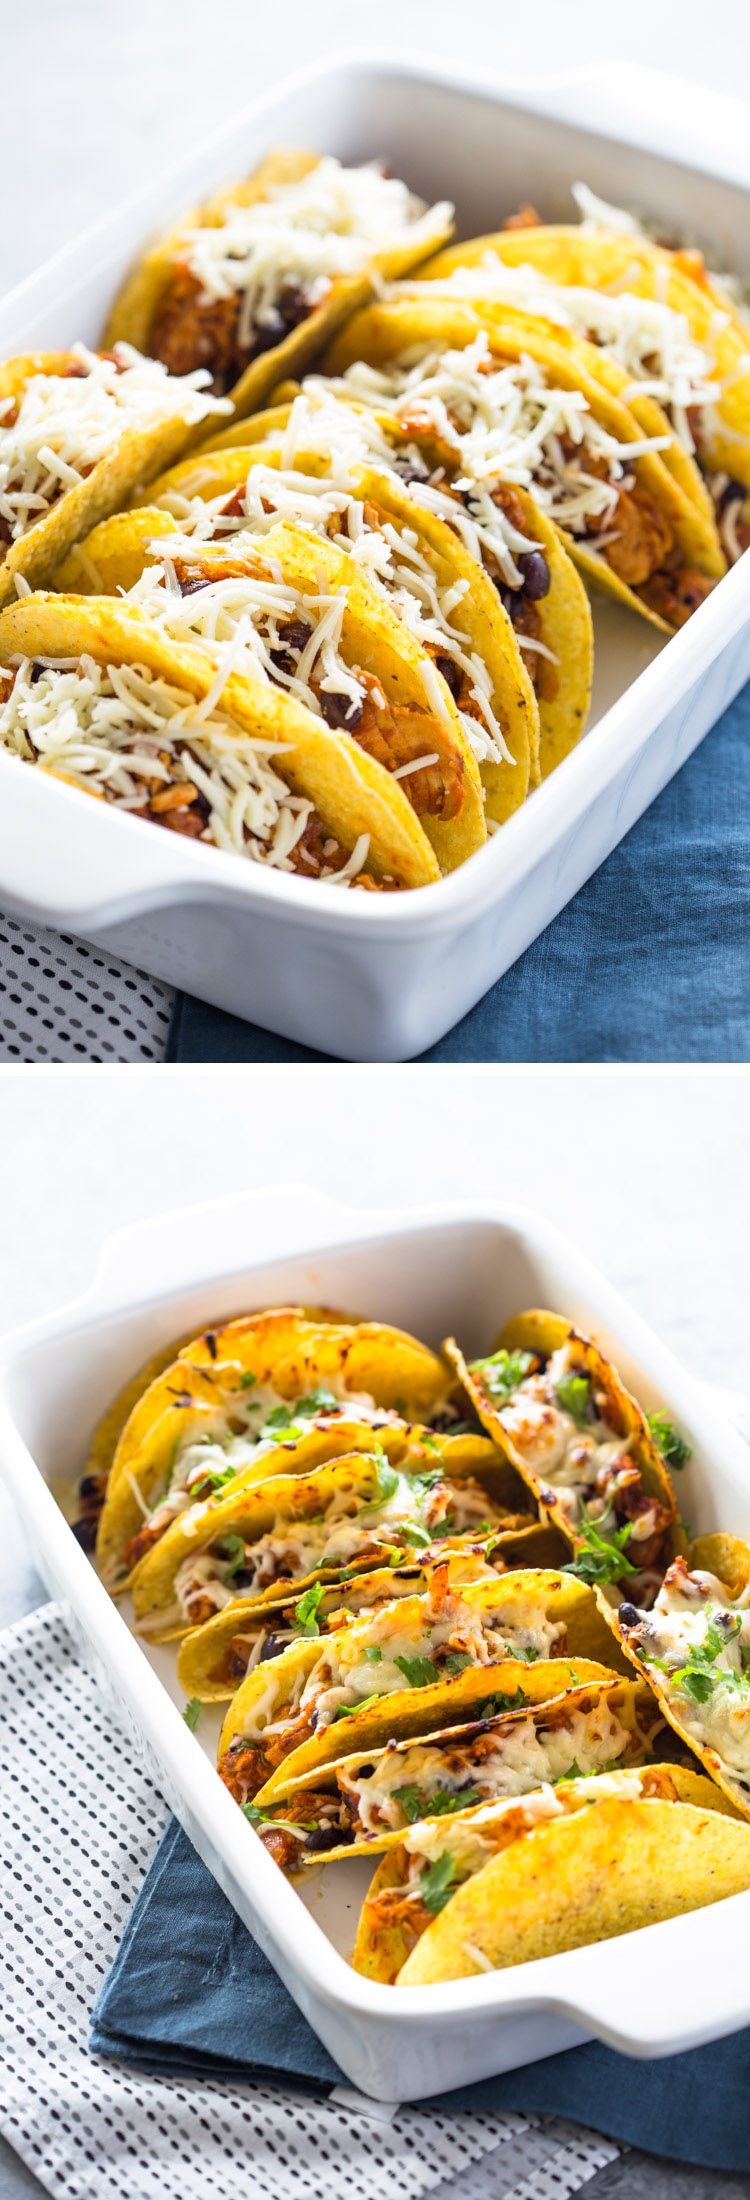 Easy Baked Chicken Tacos